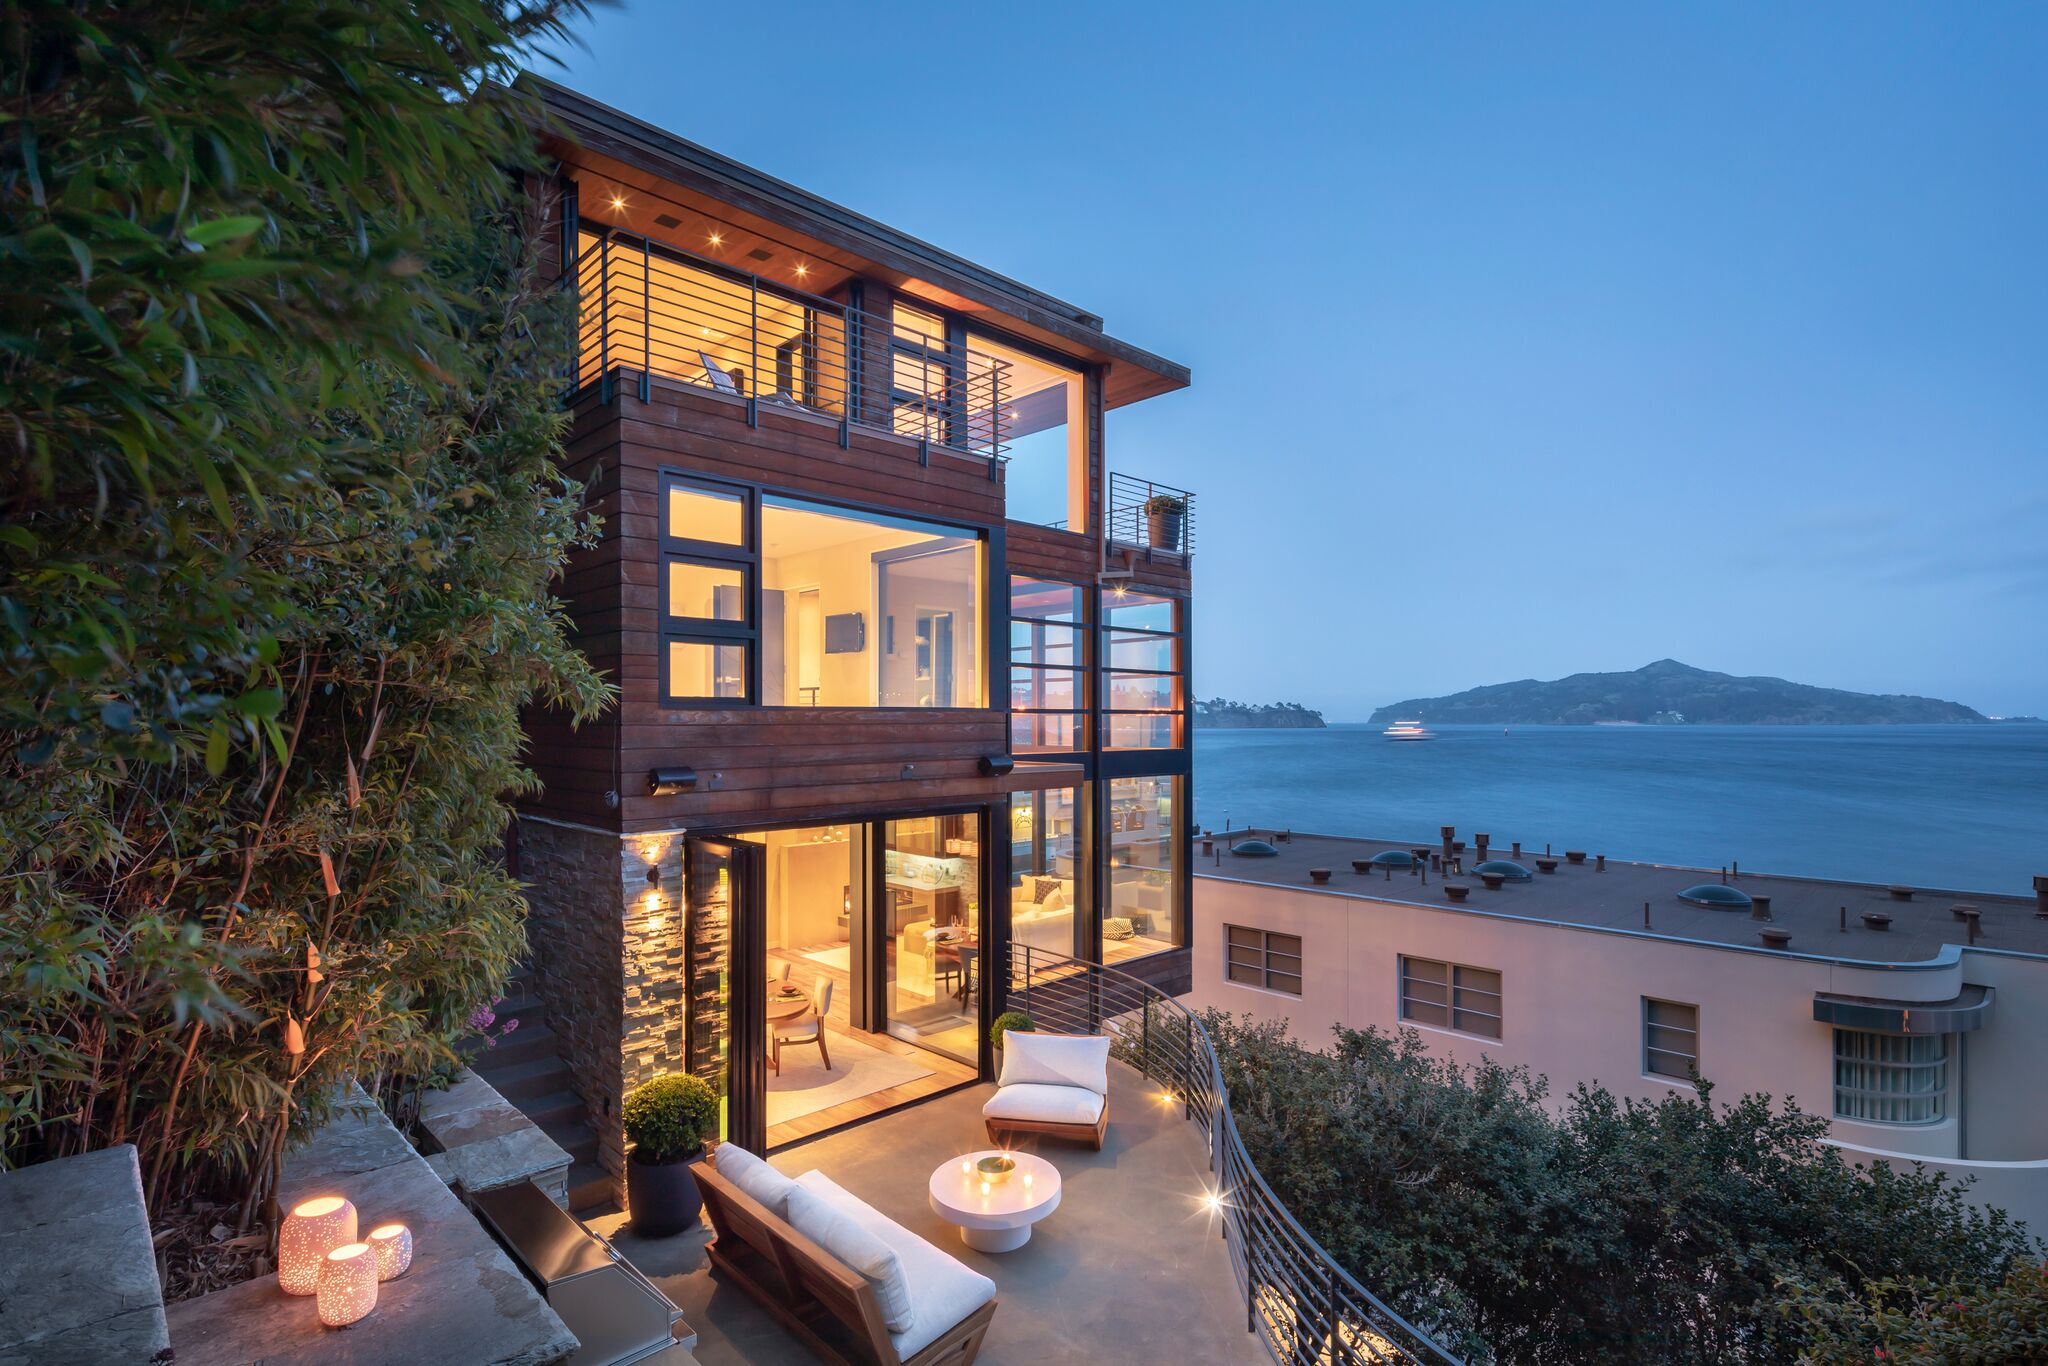 Sausalito architectural gem wrapped in sweeping Bay views